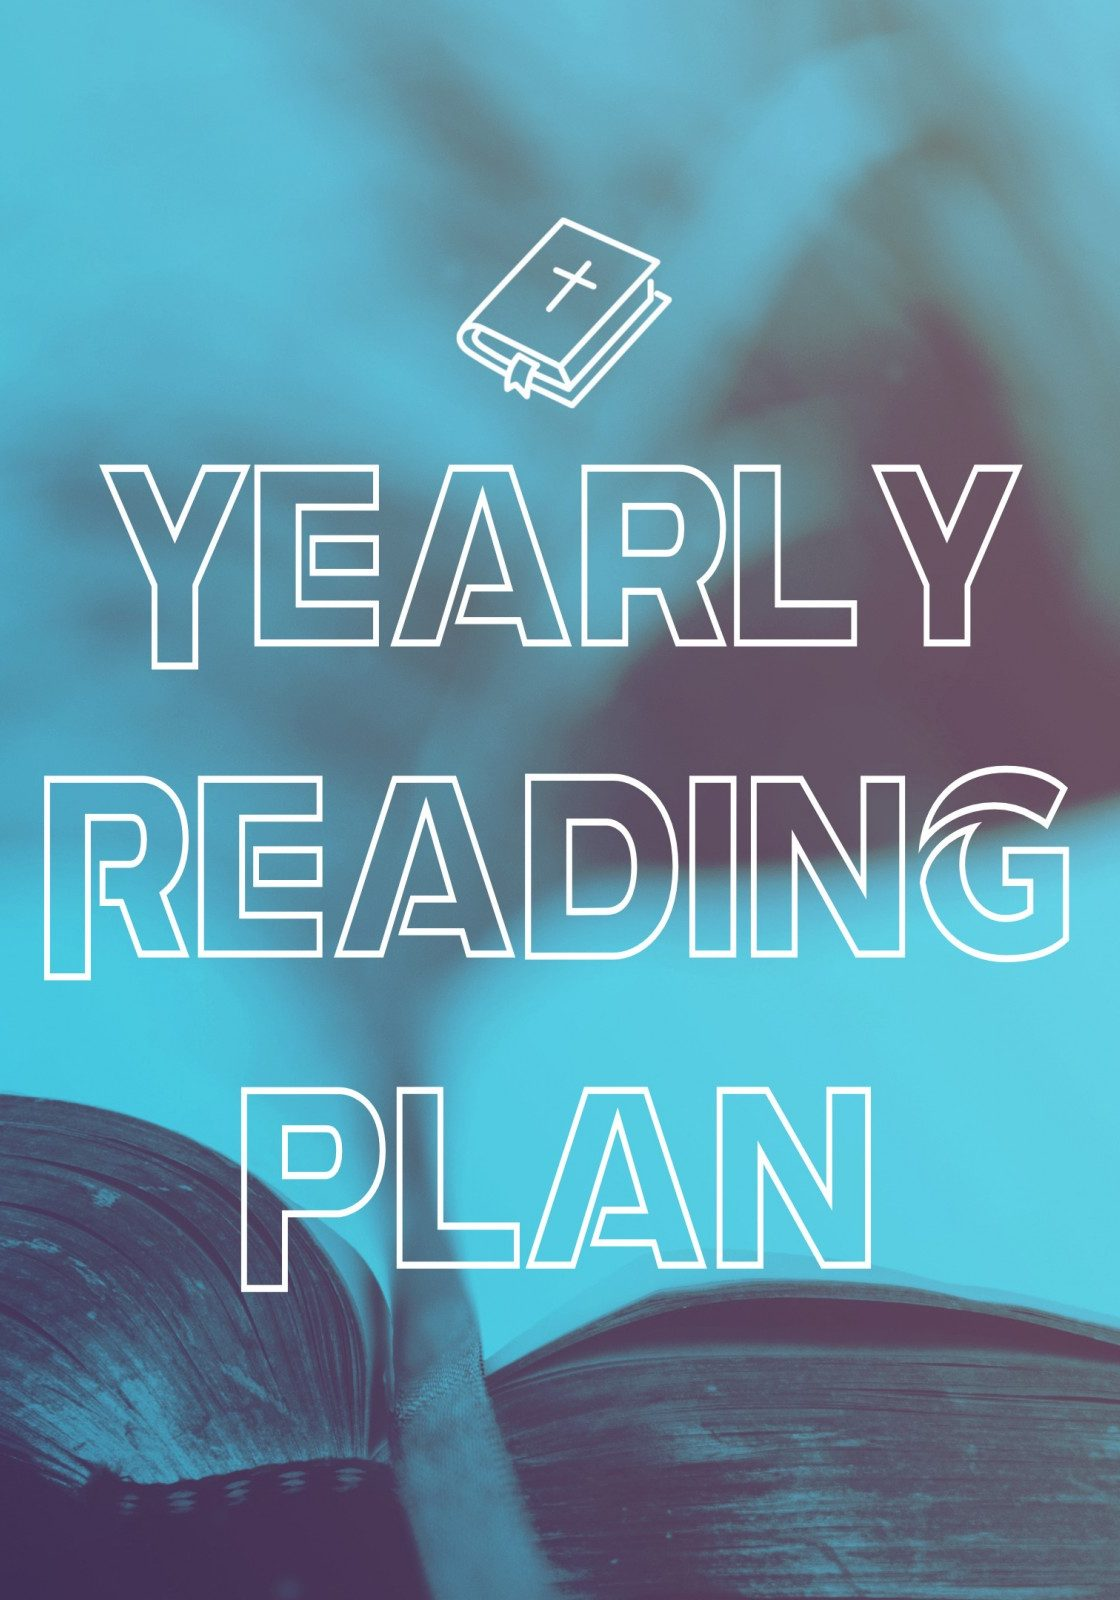 Yearly Reading Plan Graphic